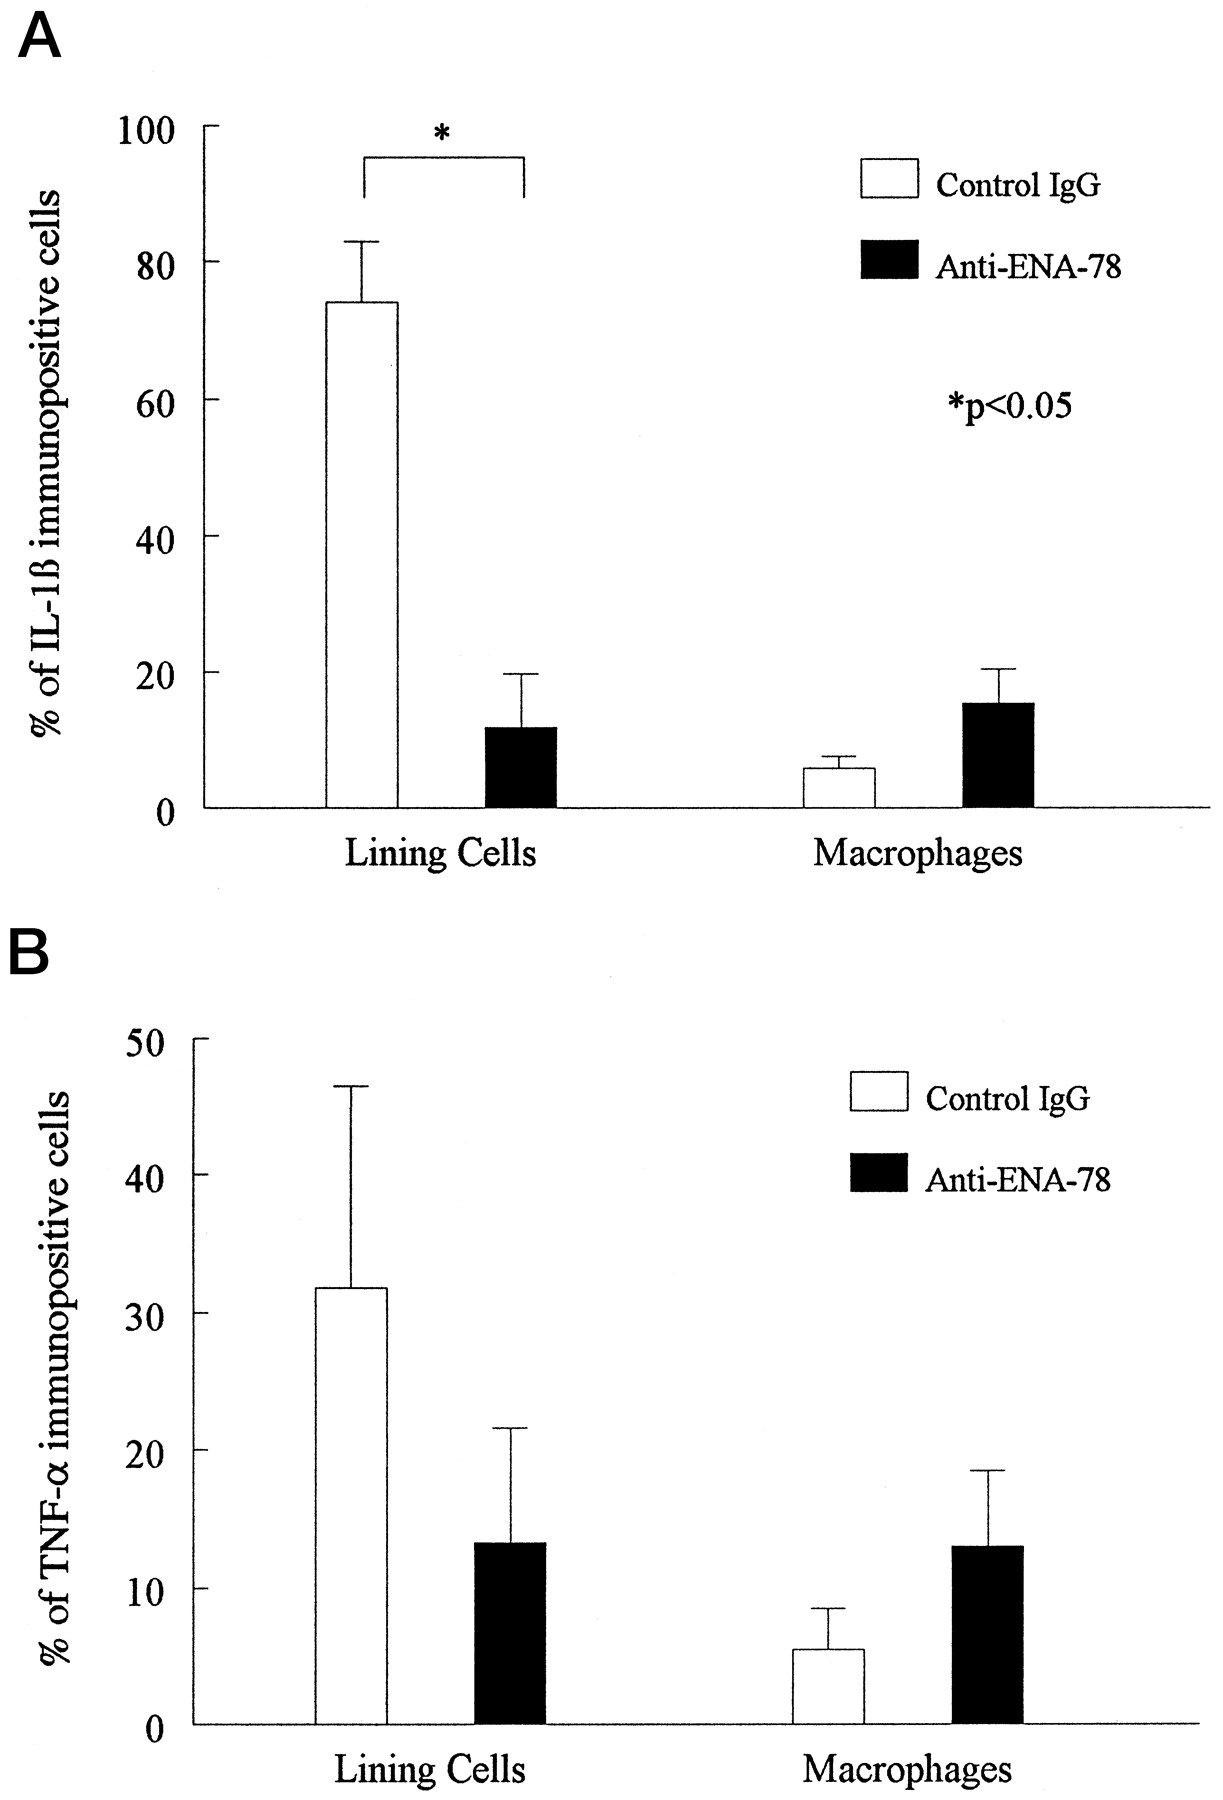 role of anti mcv in arthritis Citbip is a newly described acpa target that may play a pro-inflammatory role in arthritis citrullinated bip in rheumatoid arthritis of anti-mcv antibodies in.